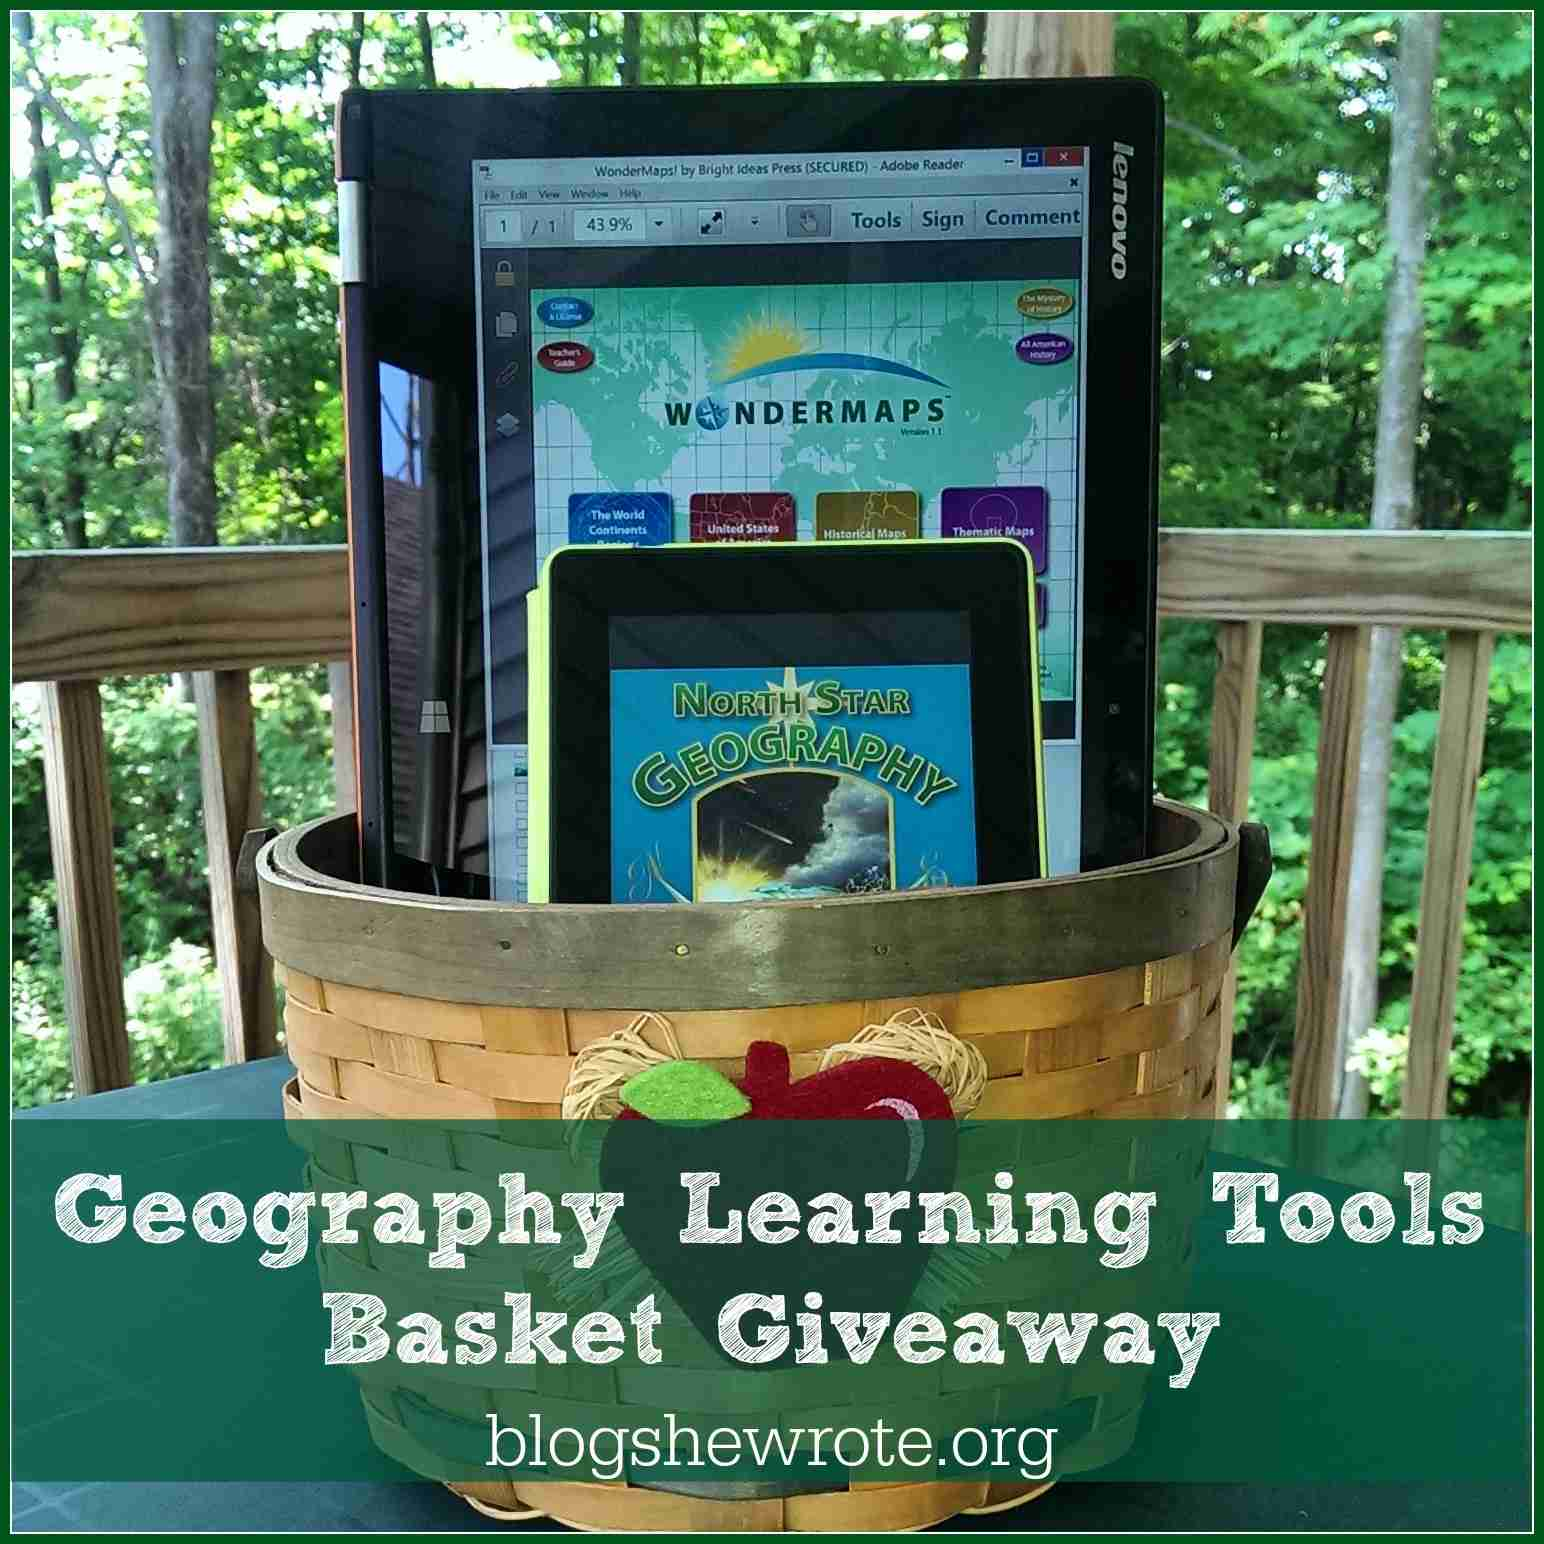 Blog, She Wrote: Geography Learning Tools Basket Giveaway